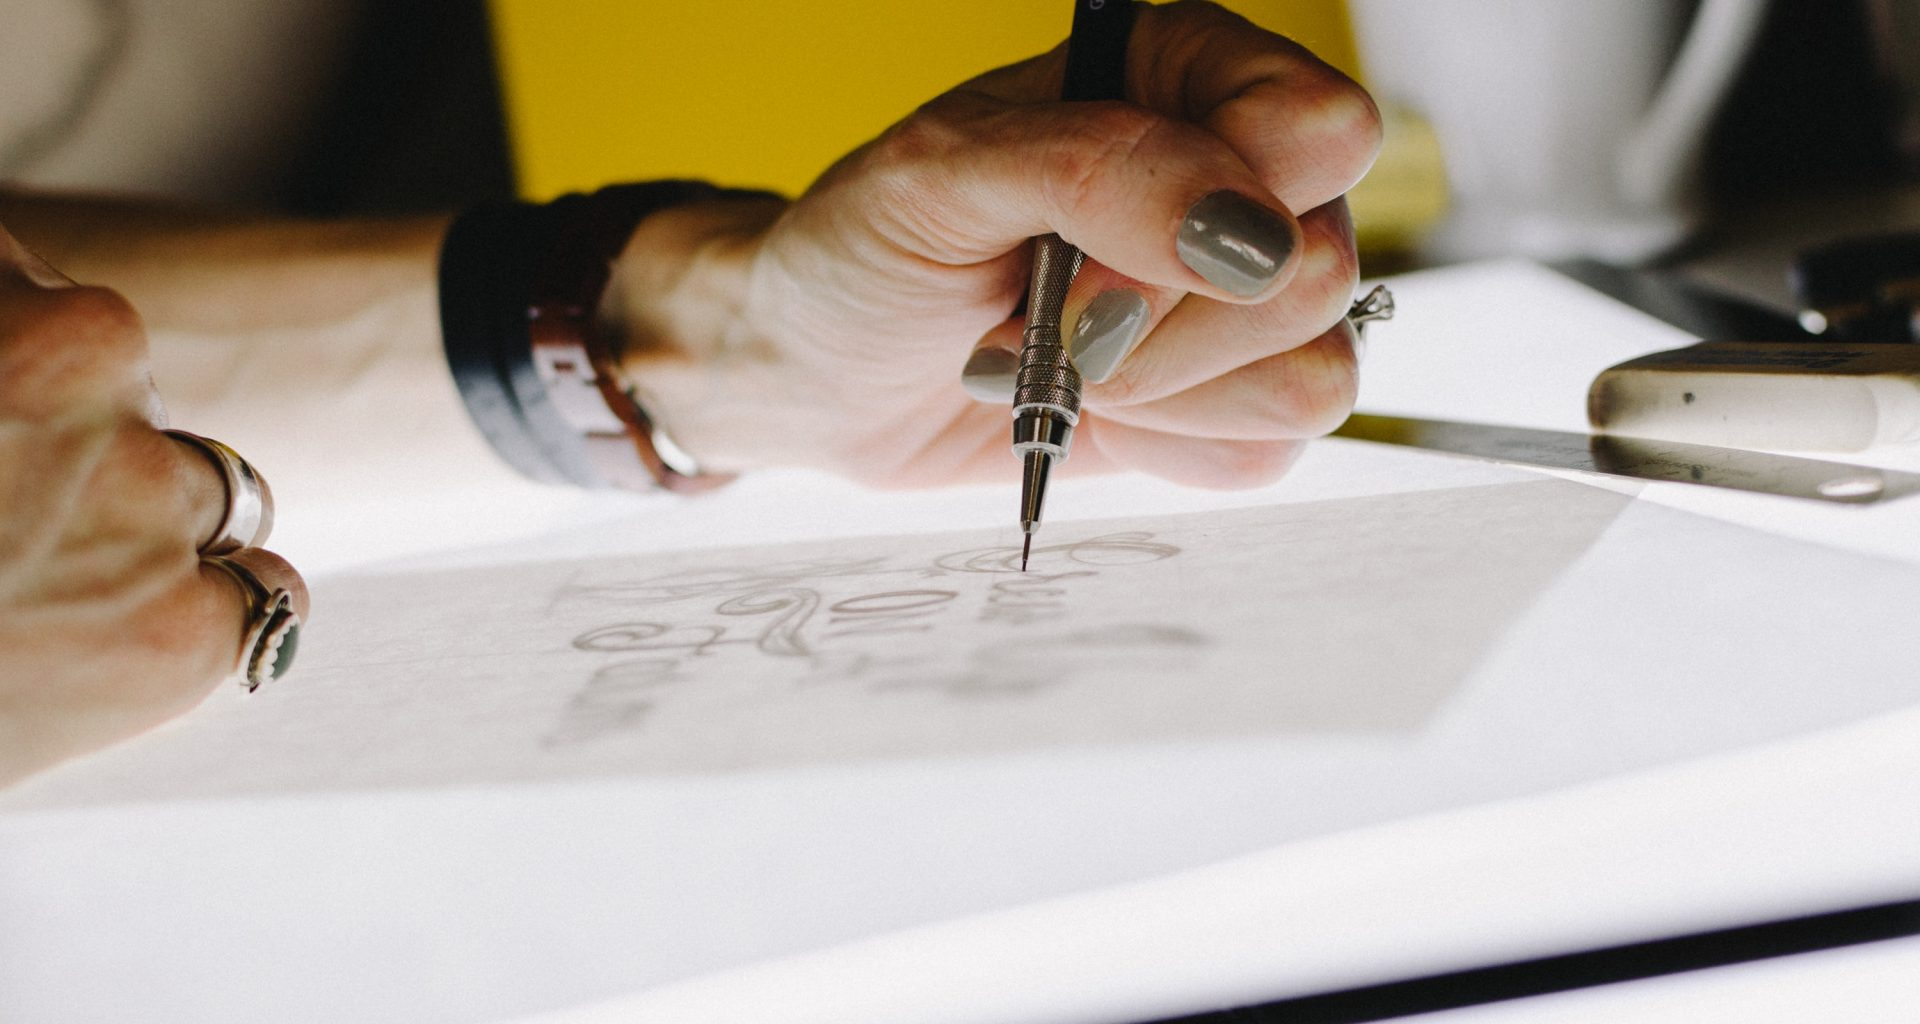 person lettering on tracing paper using mechanical pencil